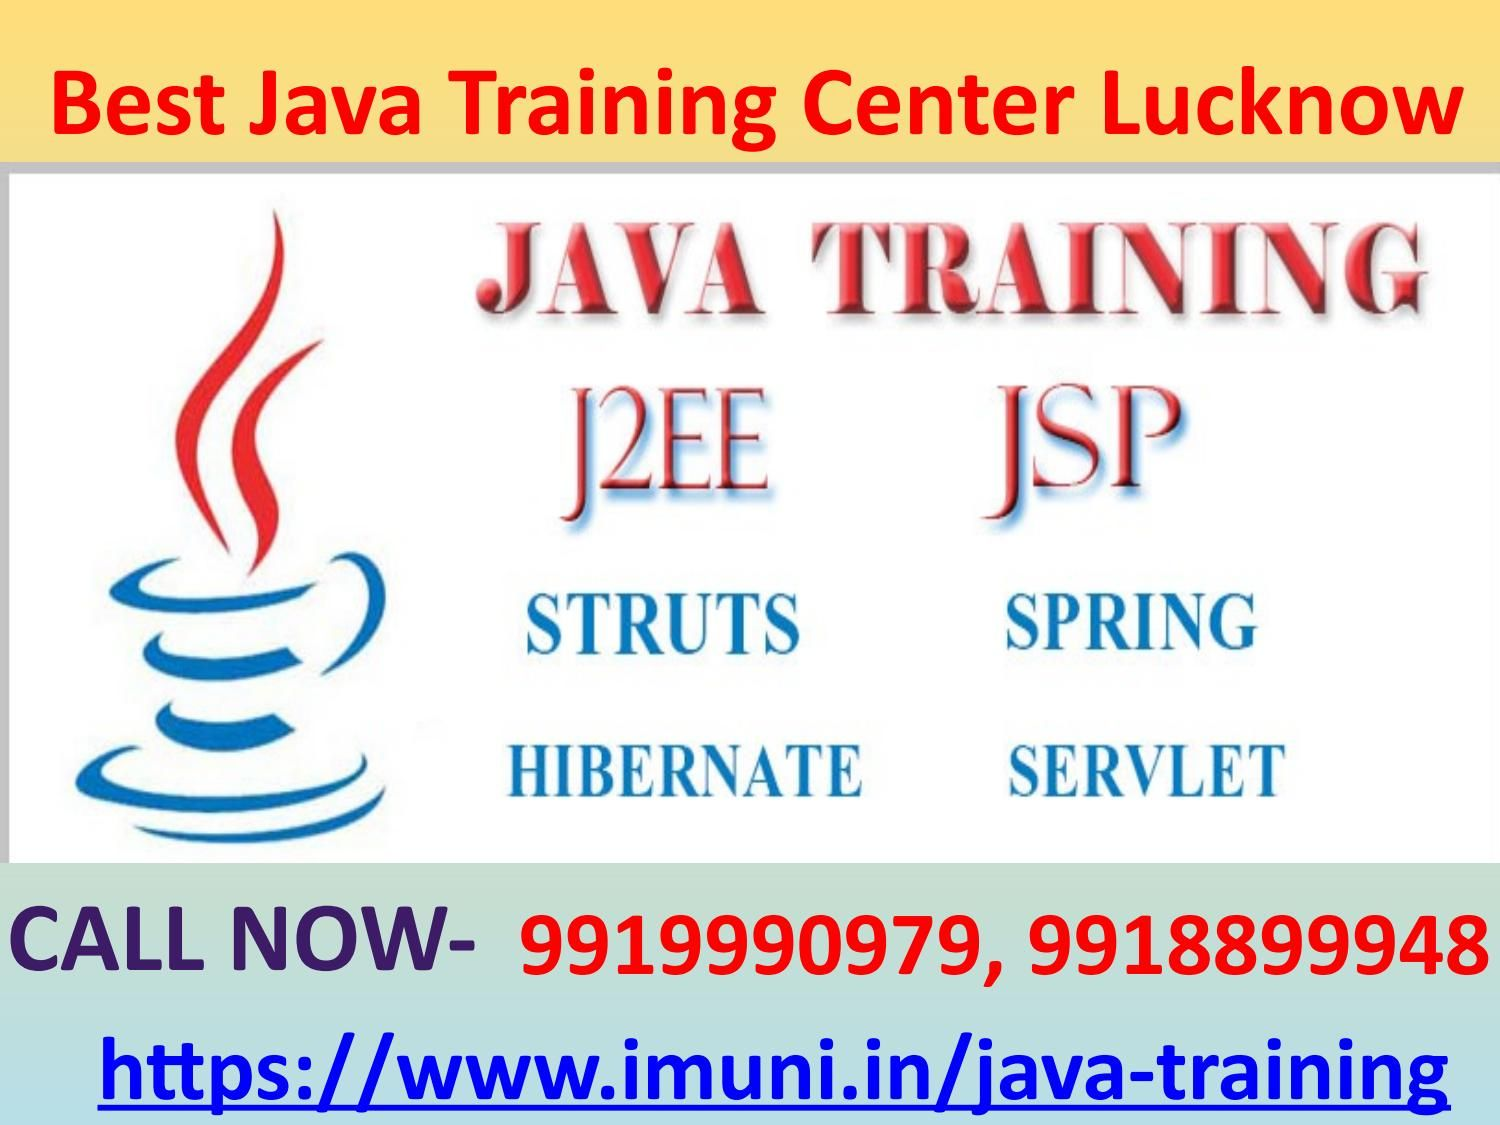 At IMuni IT Solutions, we have highly qualified and